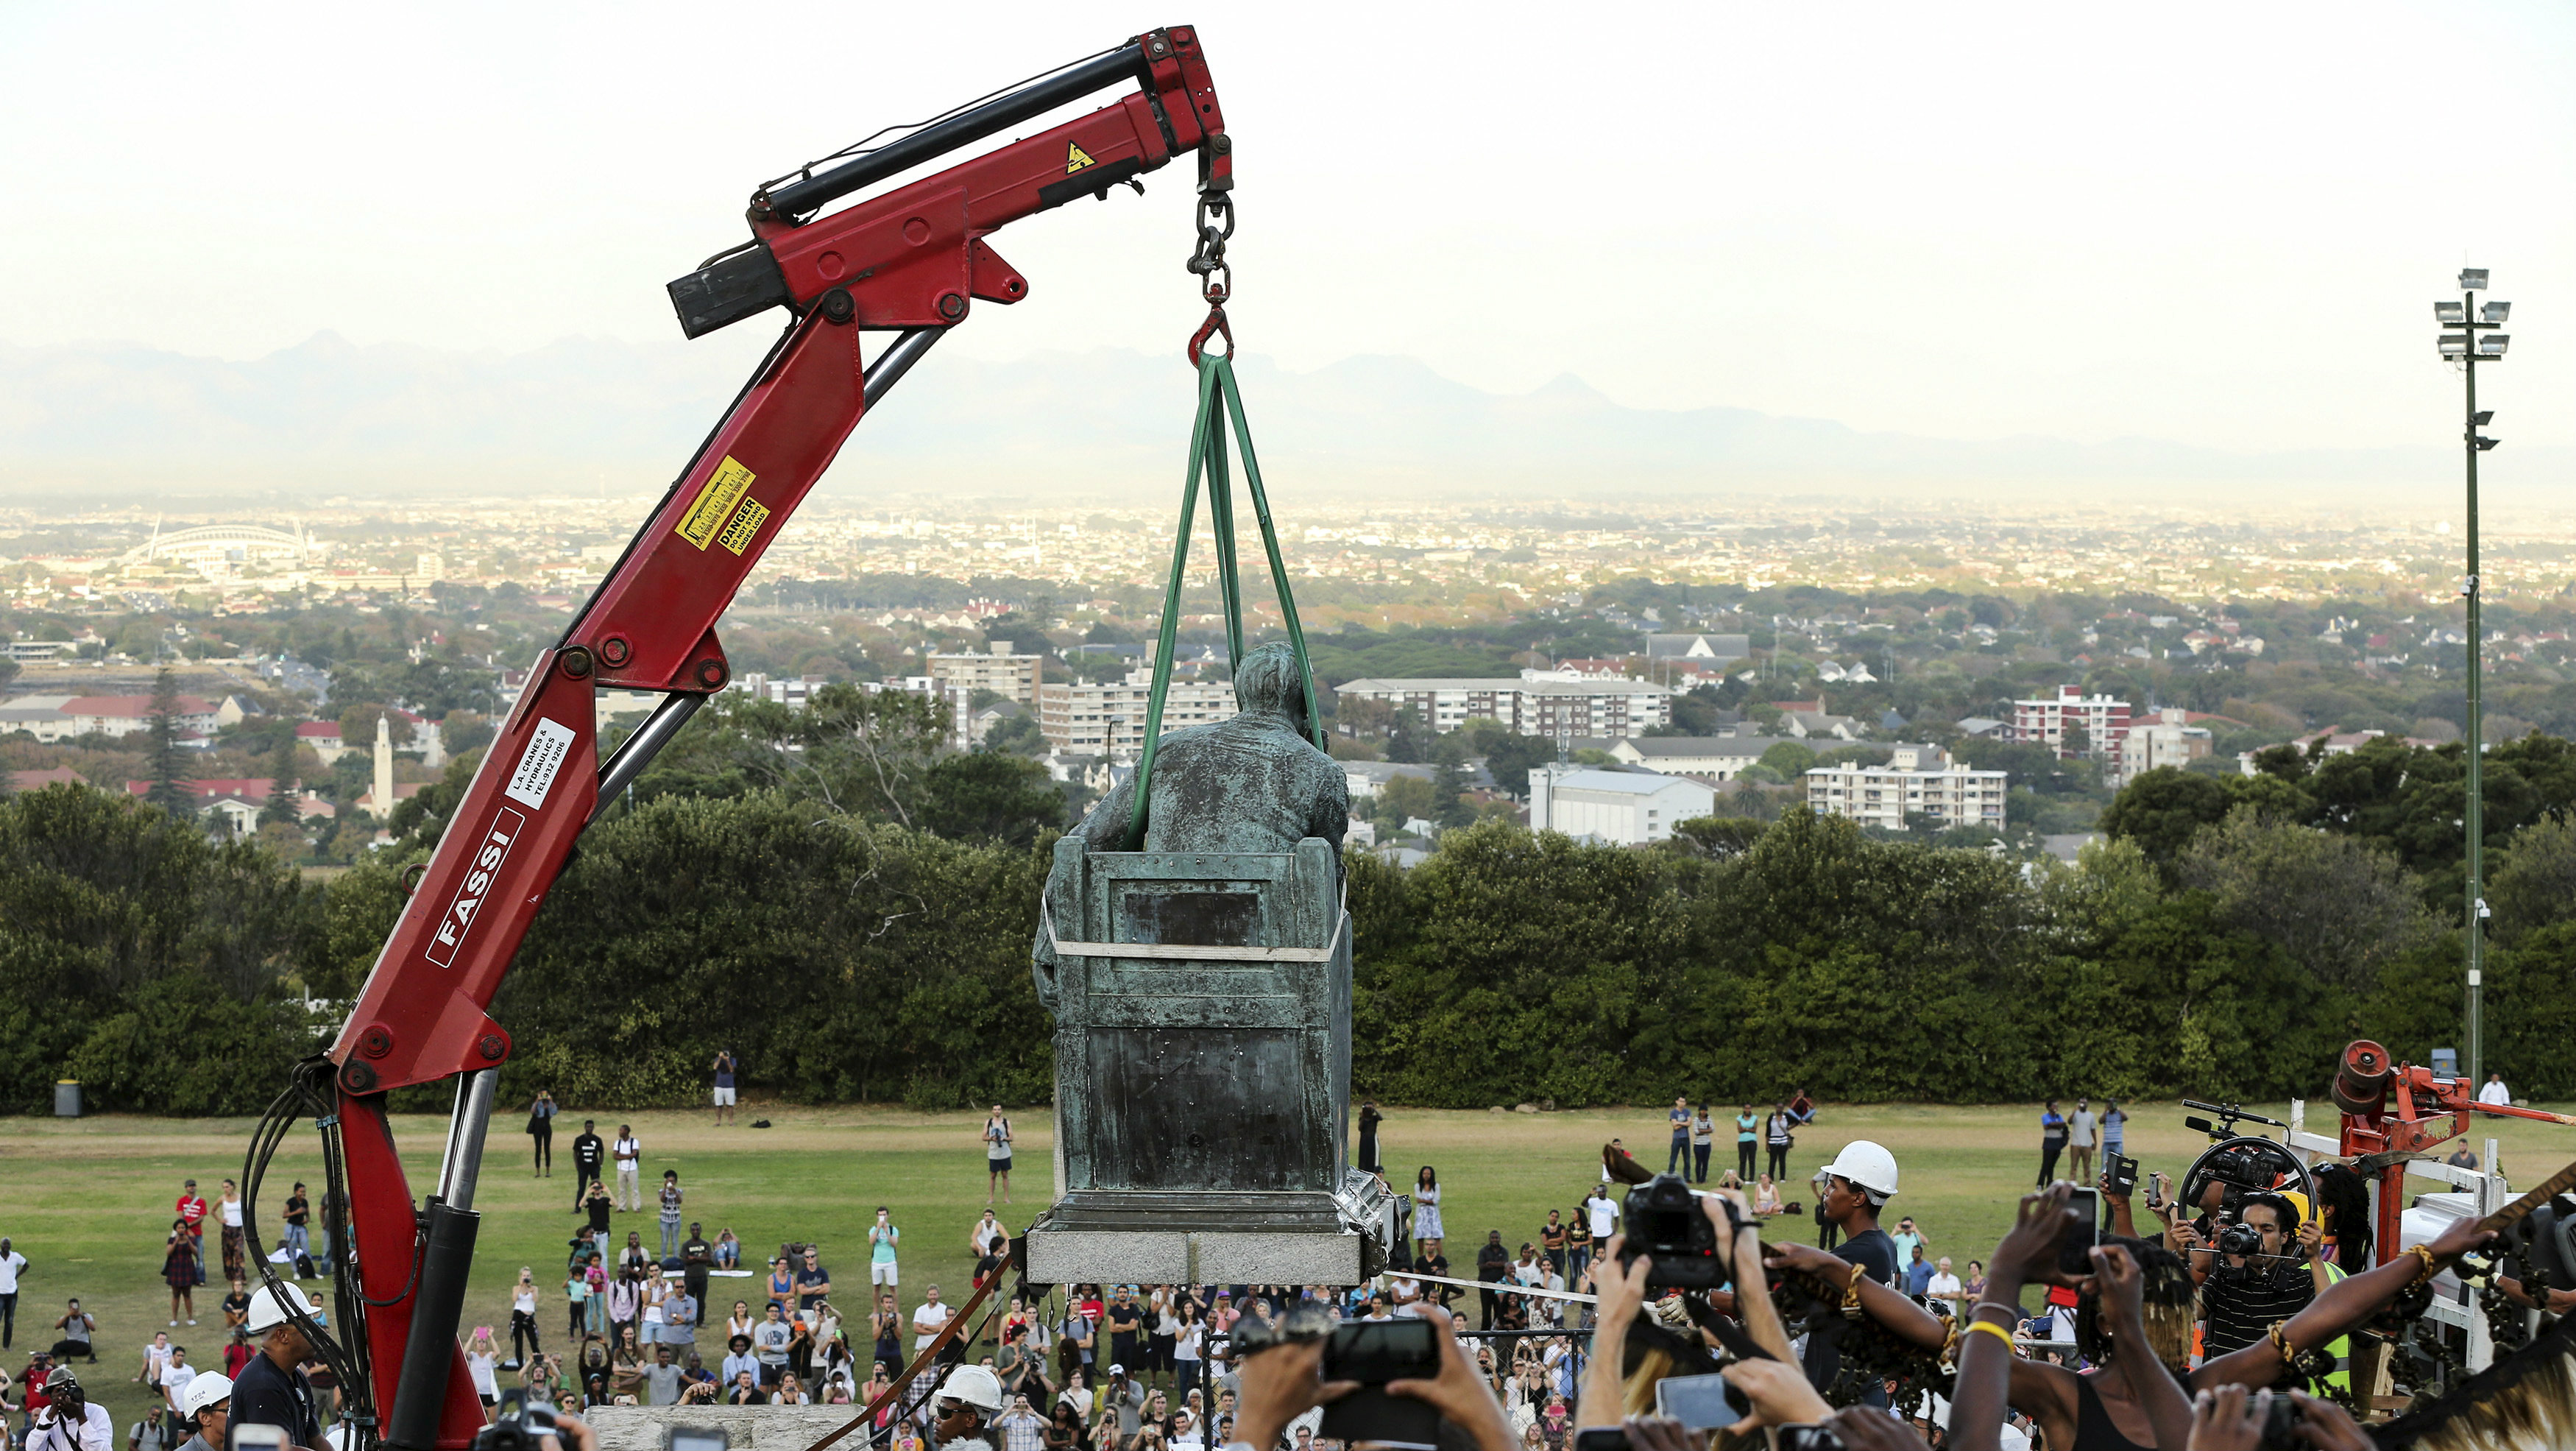 Students cheer as the statue of Cecil John Rhodes is removed from the University of Cape Town (UCT), April 9, 2015. The statue at the university, one of Africa's top academic institutions, has been covered up for the past few weeks as both white and black students regularly marched past with #Rhodesmustfall placards calling for its removal. They believe it is a symbol of the racism against blacks that prevails in South Africa two decades after the end of oppressive white-minority rule.